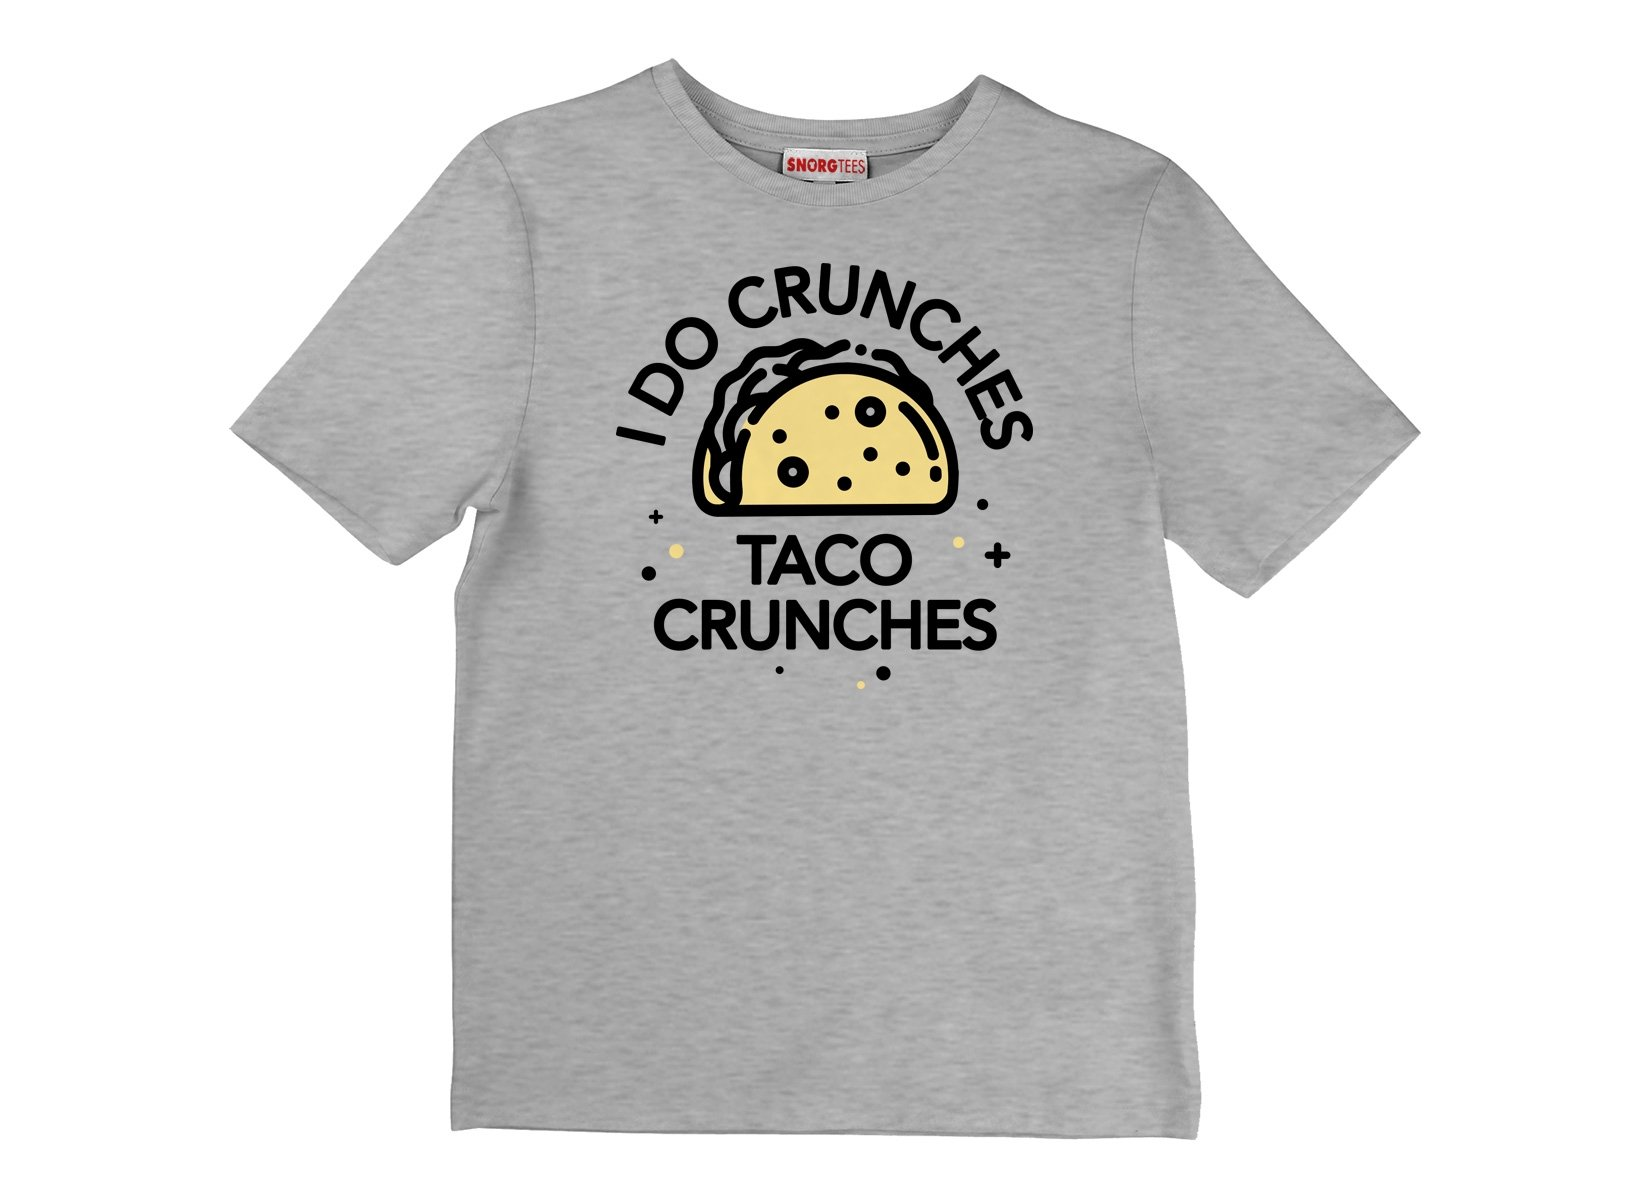 I Do Crunches Taco Crunches on Kids T-Shirt